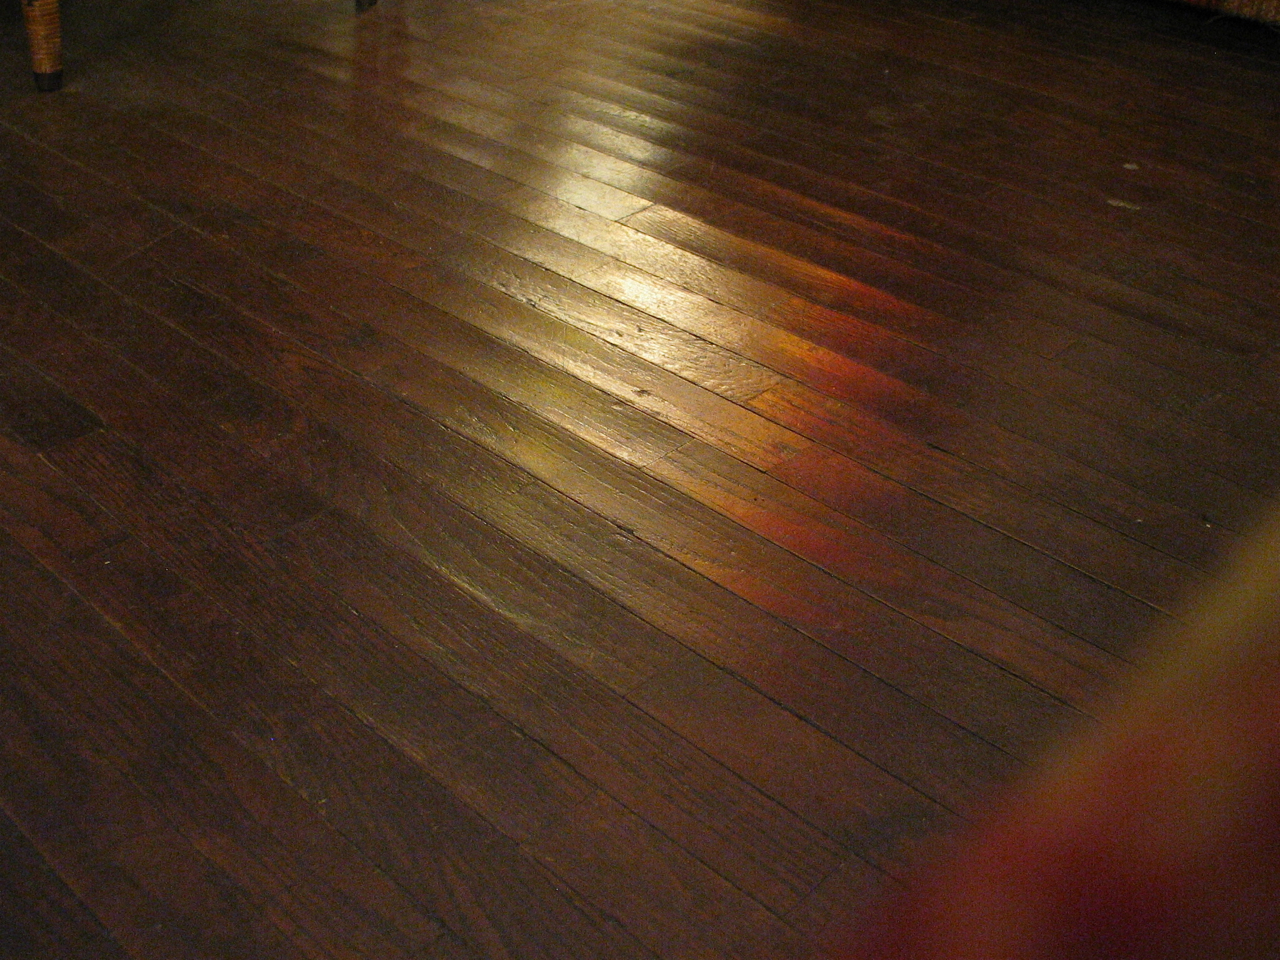 Water warps wood opposite from what you may think for Hardwood floors warping